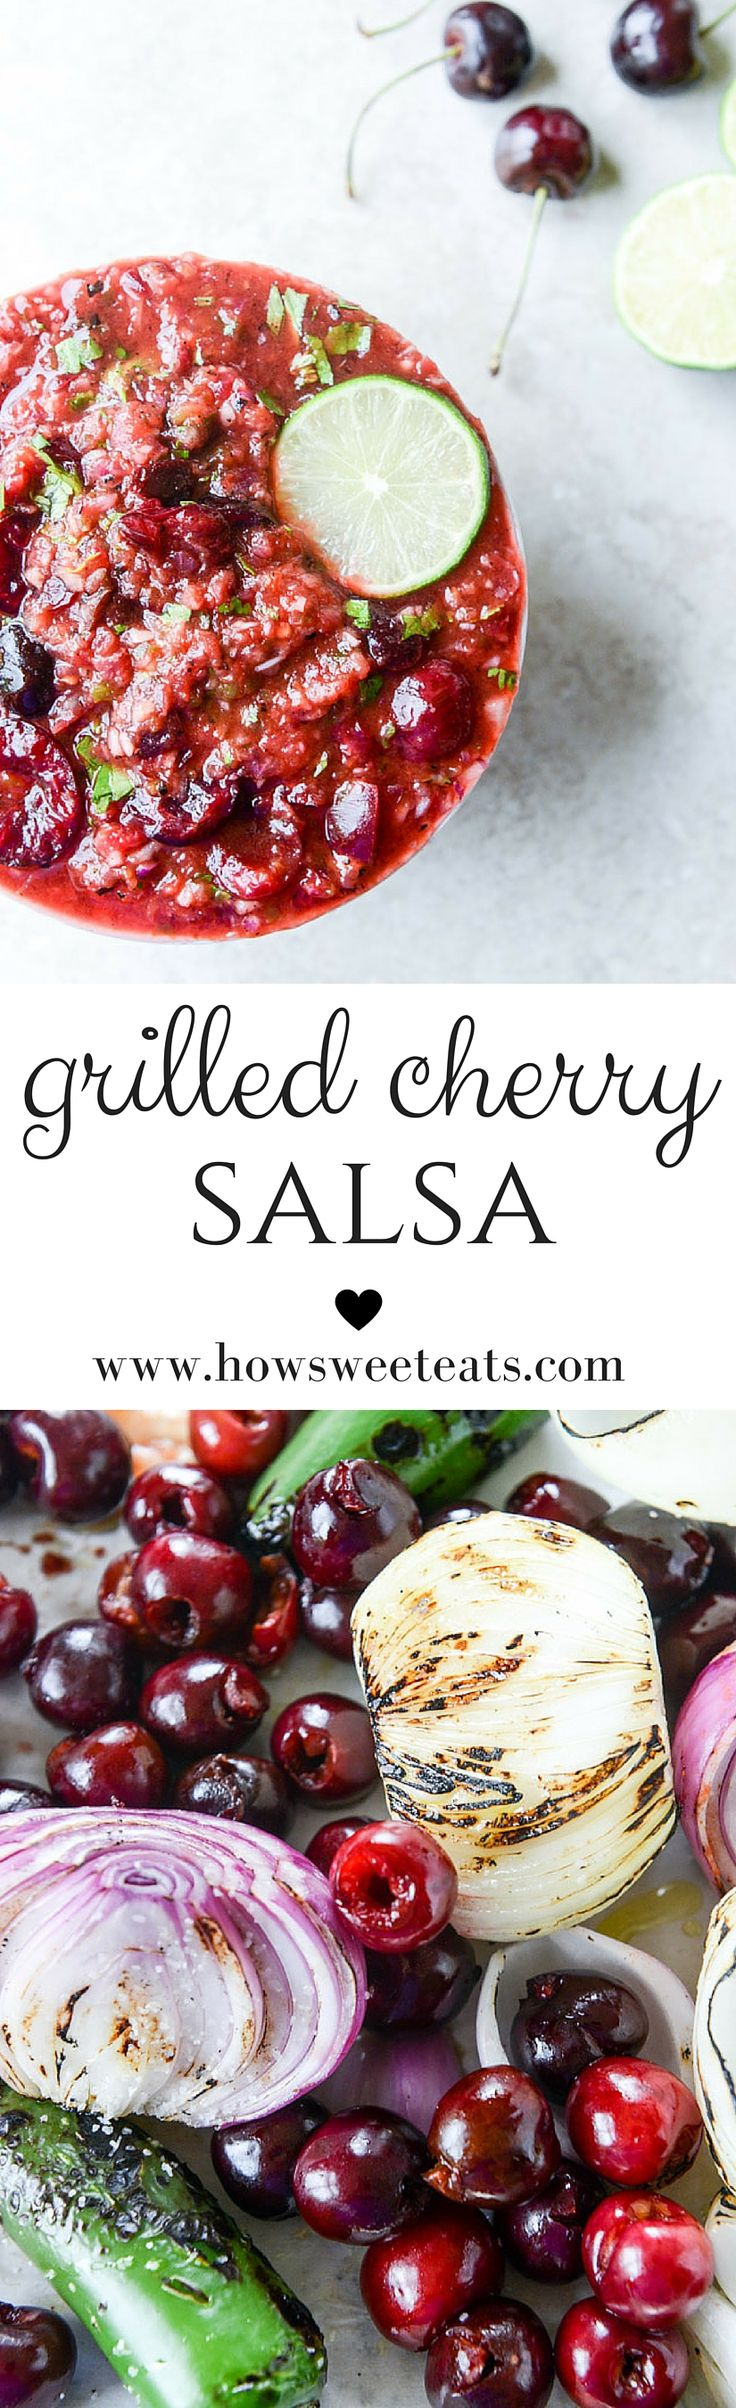 grilled cherry salsa I howsweeteats.com